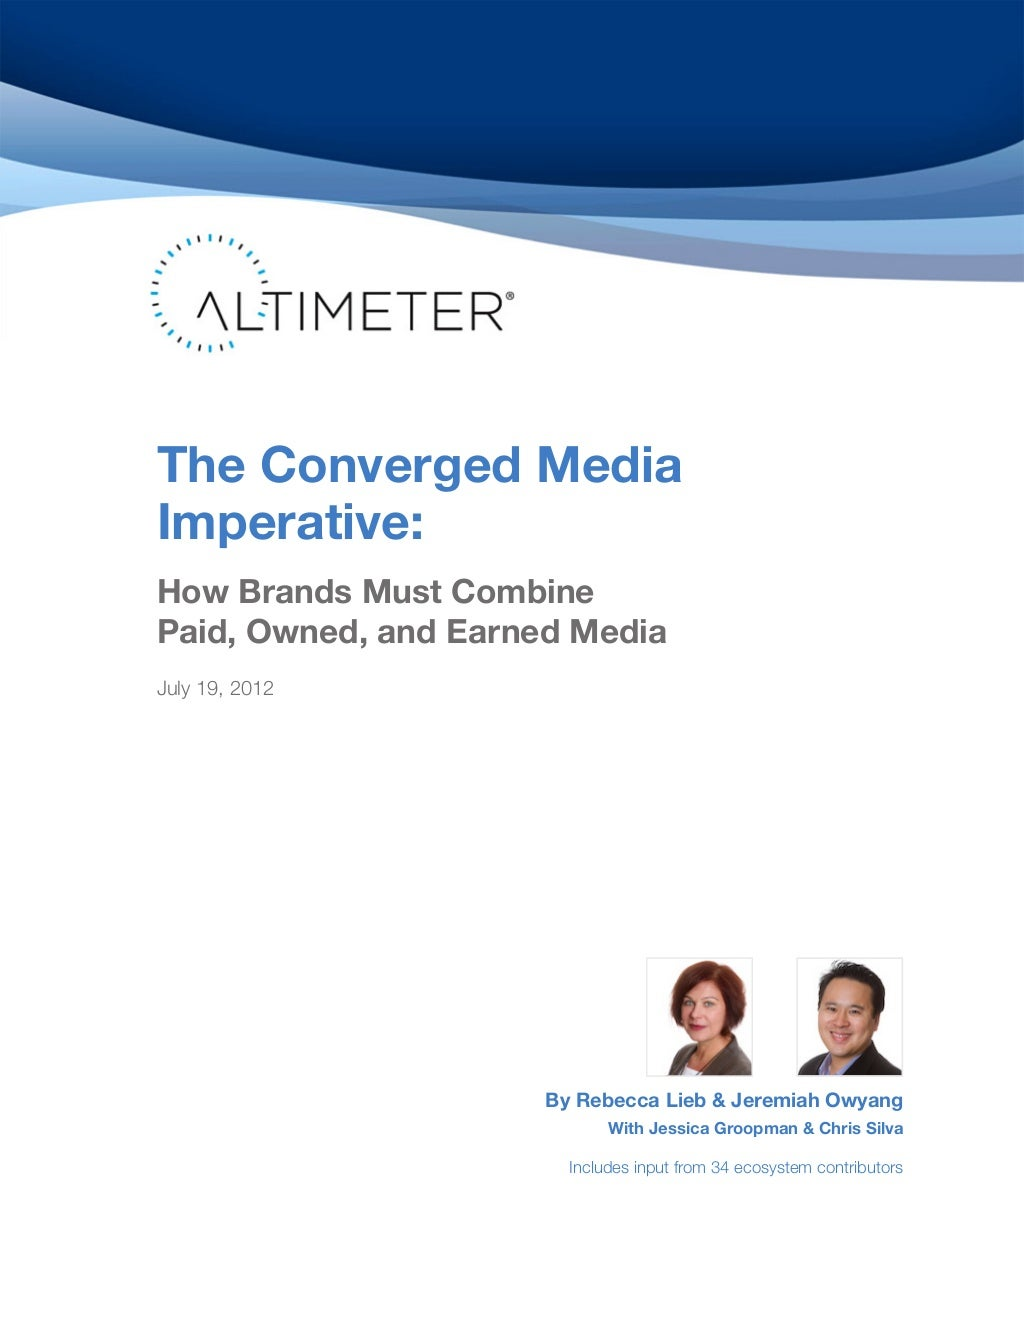 The Converged Media Imperative: How Brands Must Combine Paid, Owned & Earned Media